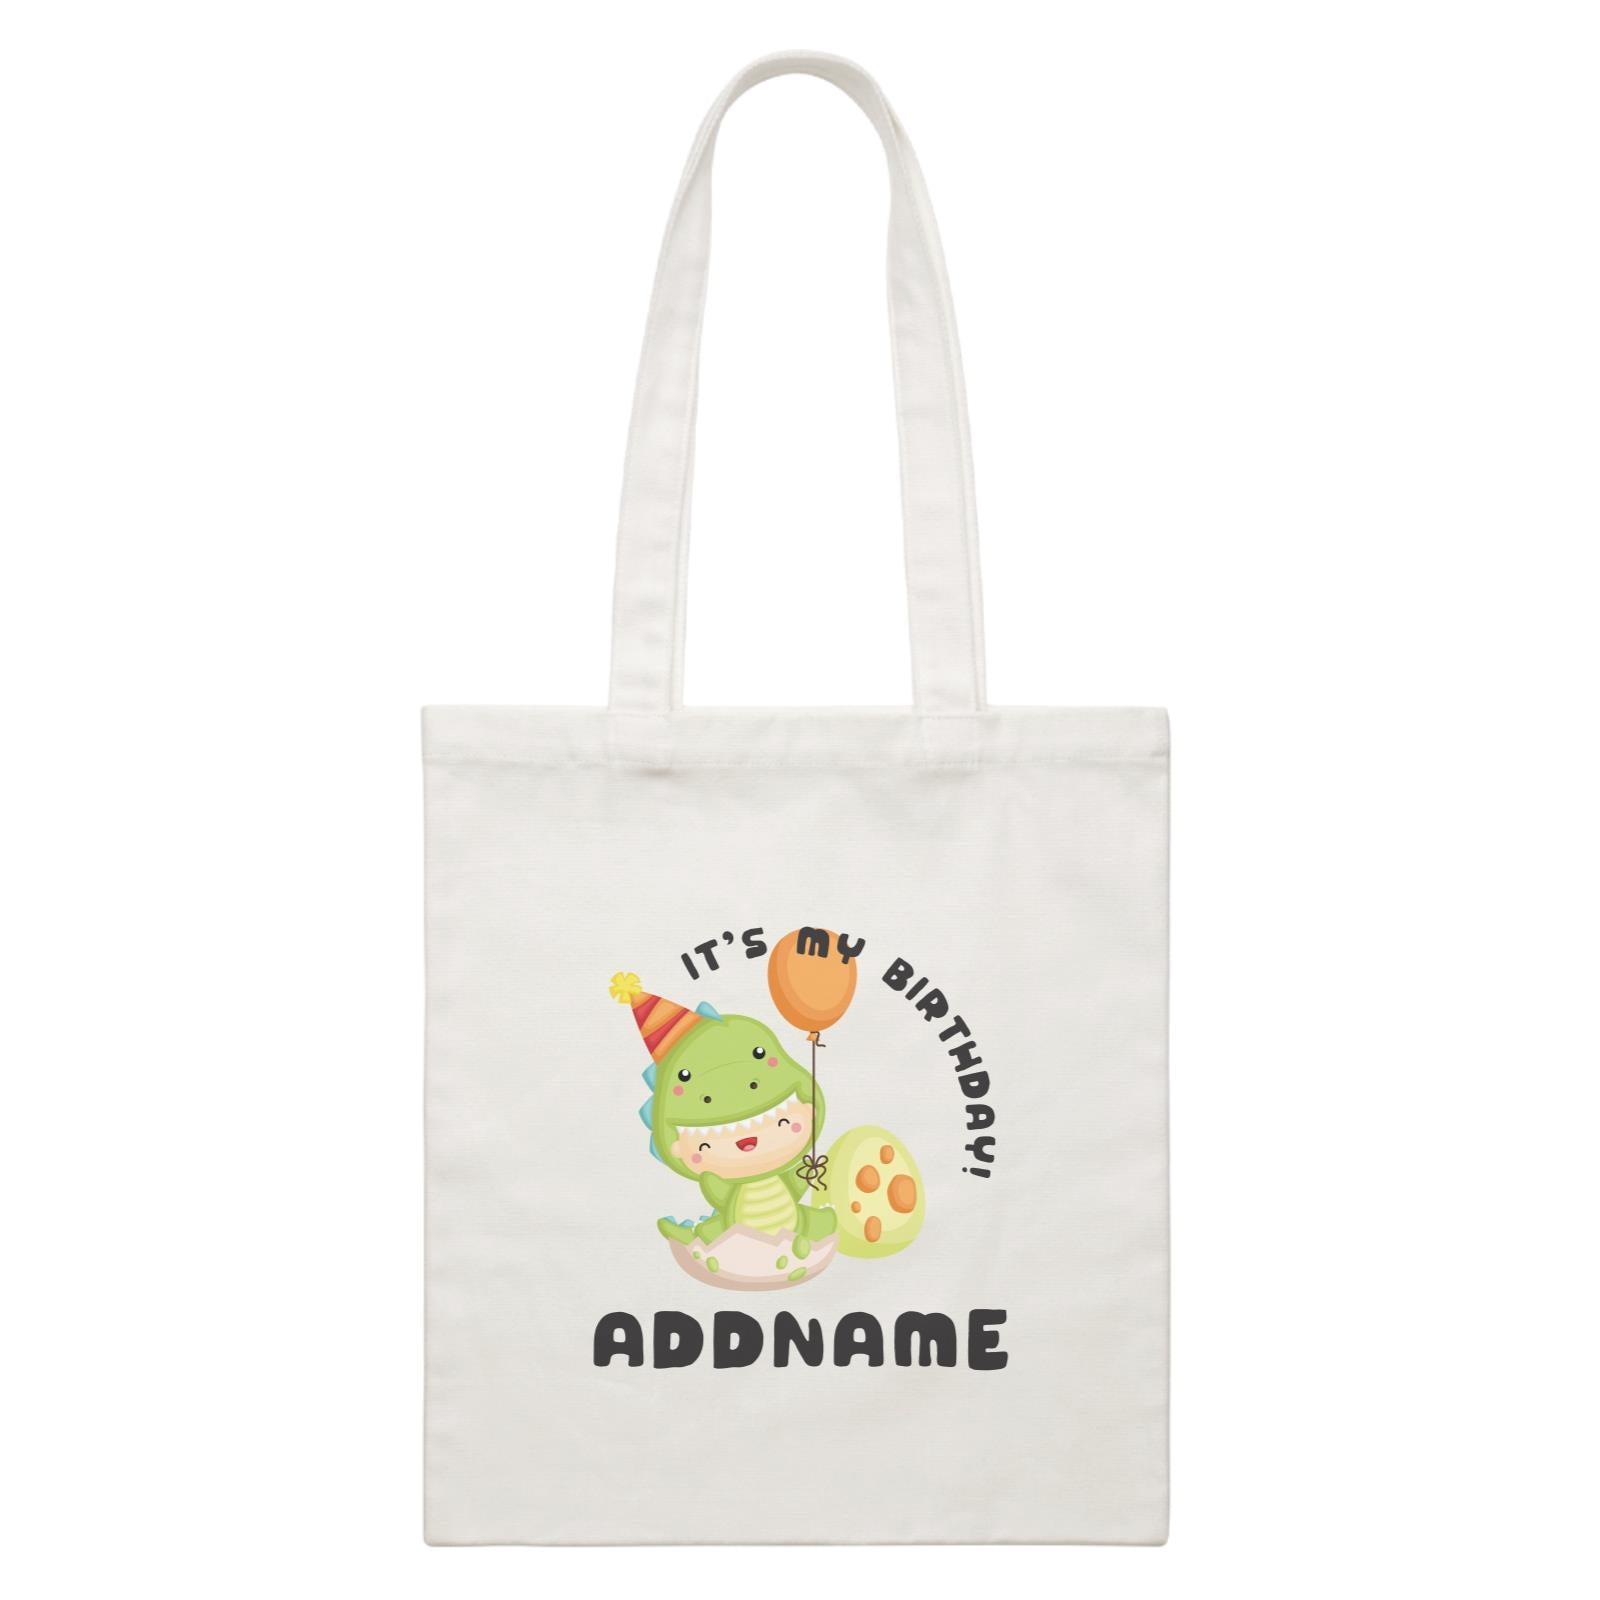 Birthday Dinosaur Happy Baby Wearing Dinosaur Suit It's My Birthday Addname White Canvas Bag